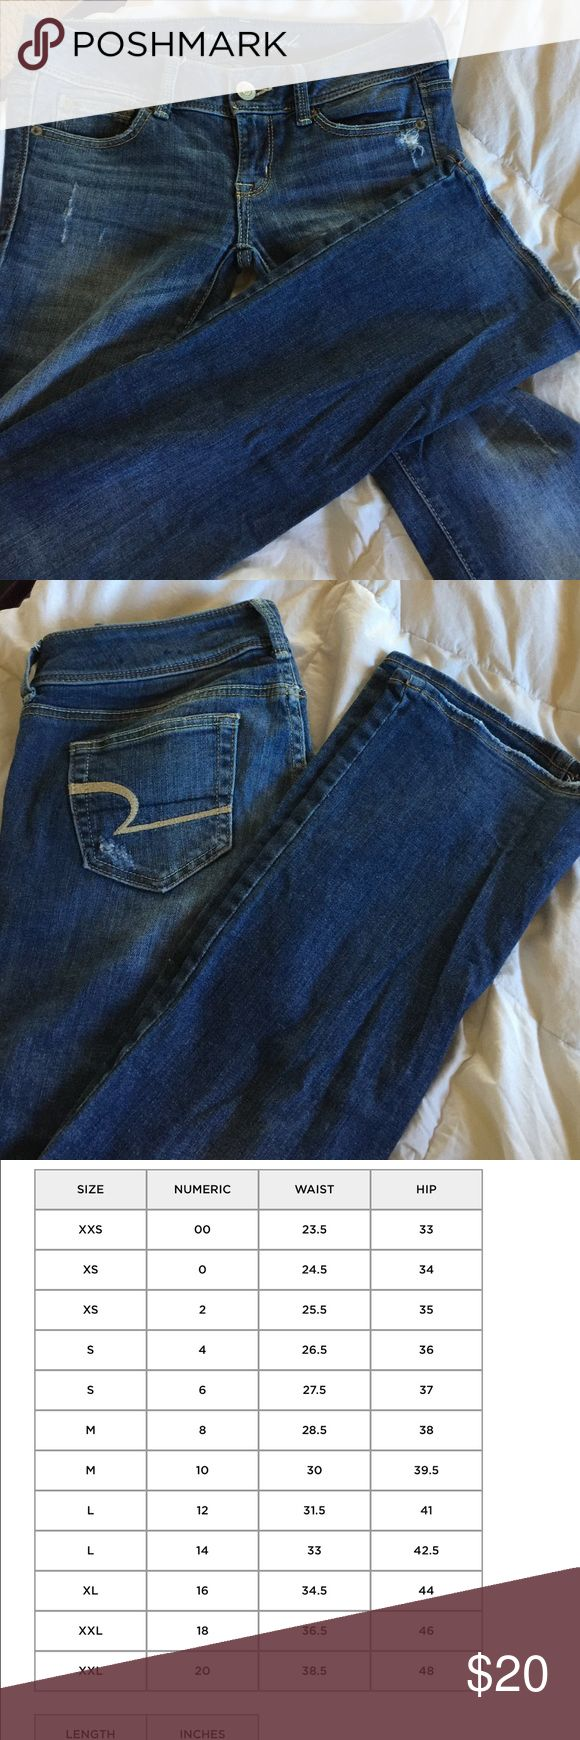 American Eagle Slim Boot jean Great condition AE slim boot.  Size 2 regular inseam.  See pictures for more sizing information. American Eagle Outfitters Jeans Boot Cut